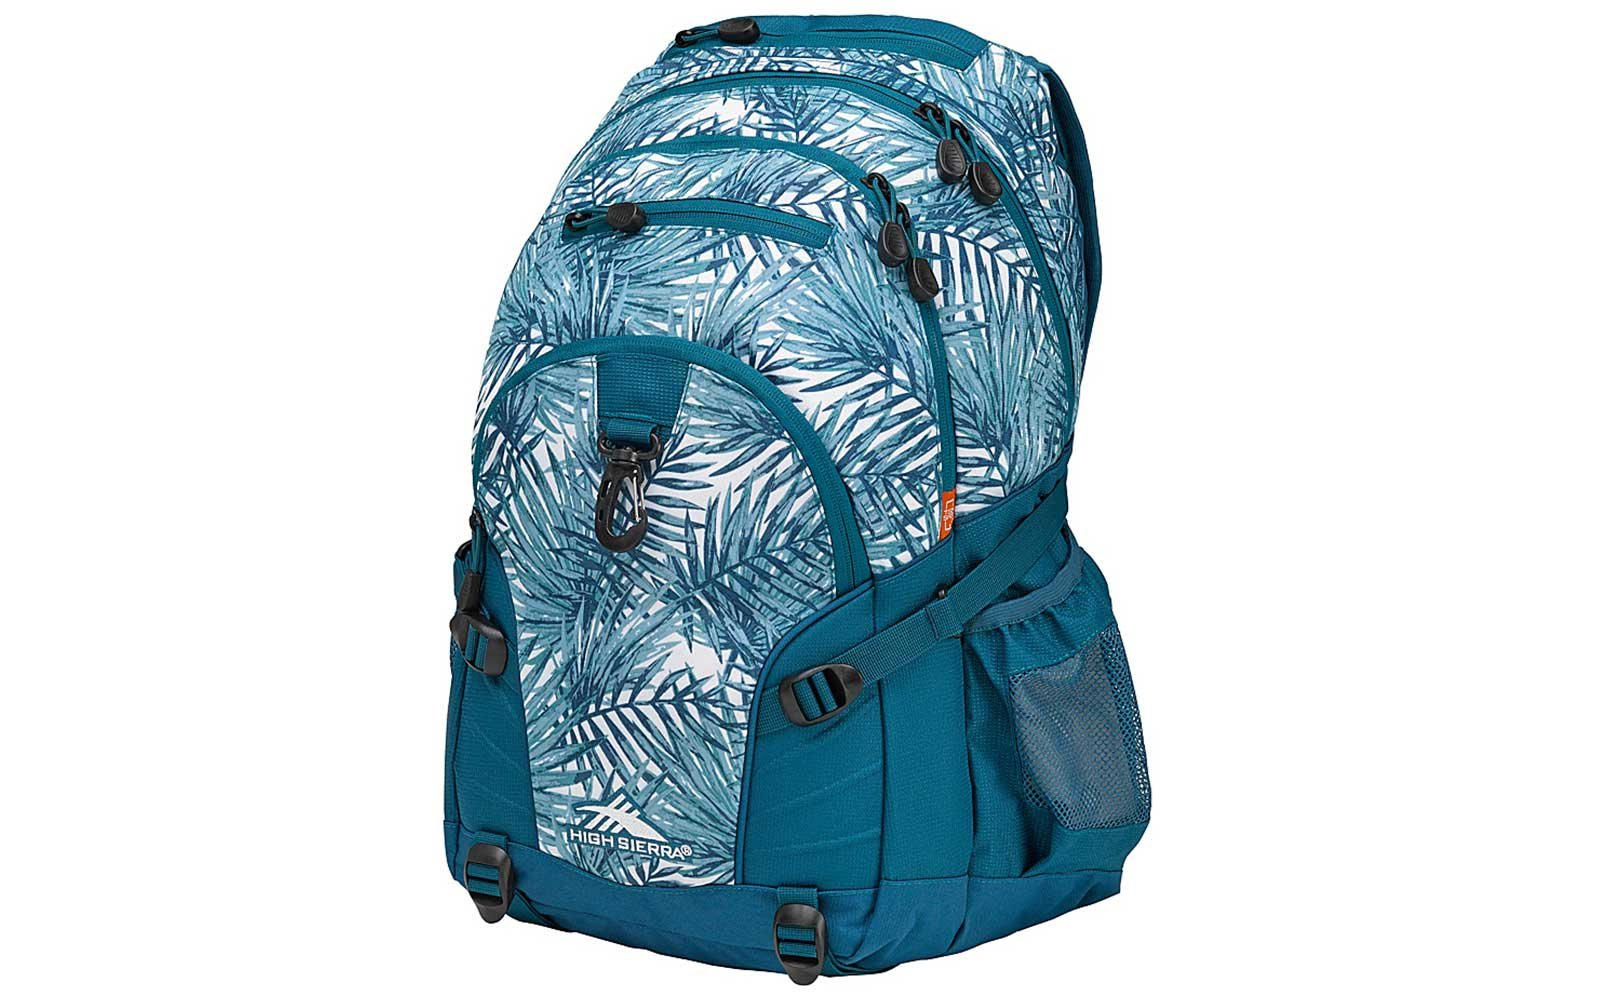 Backpacks for Travelers